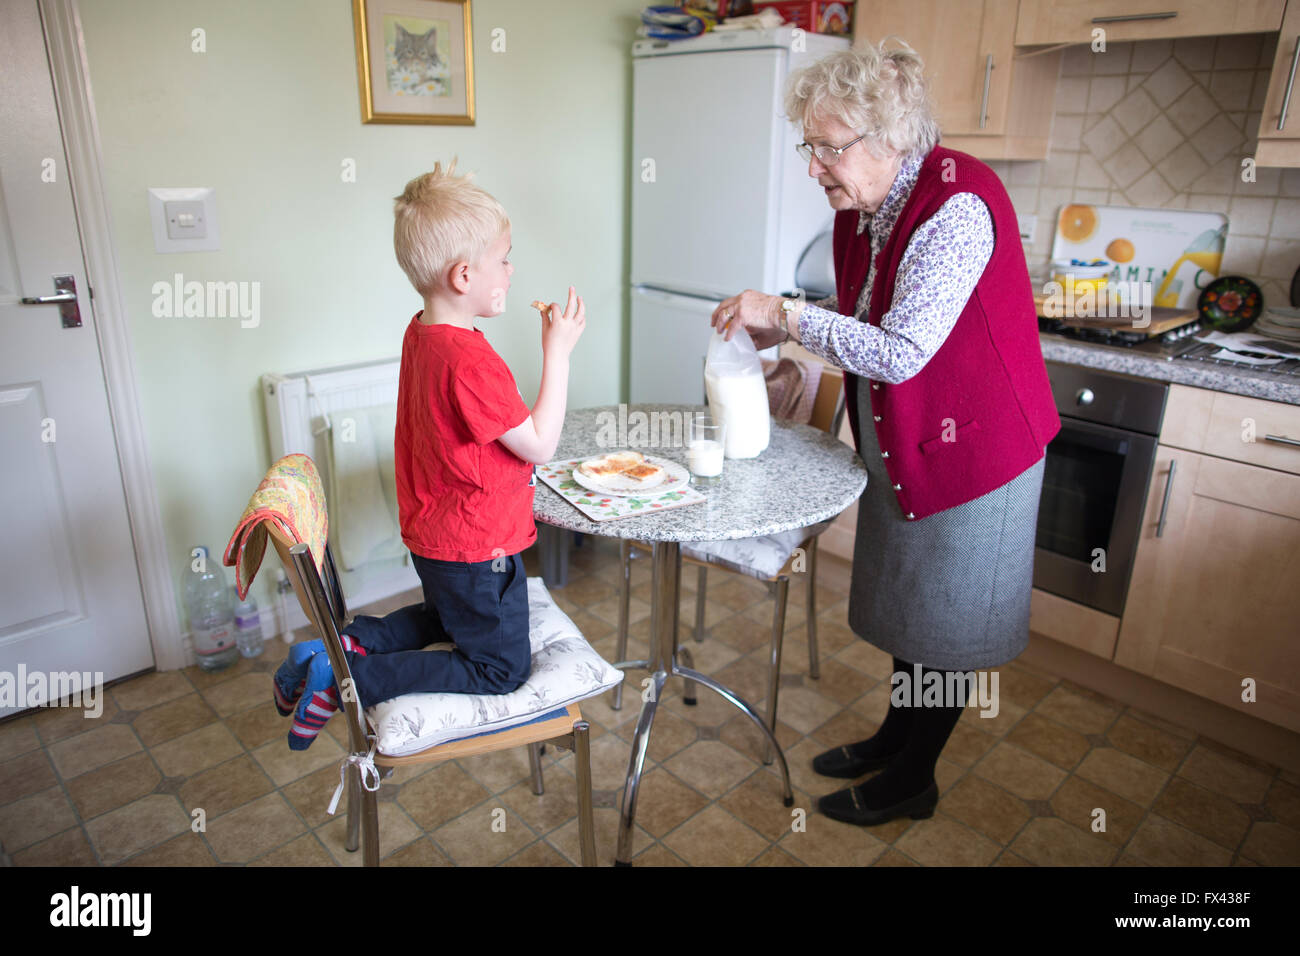 Elderly pensioner (aged 80) caring for her grandsons (aged 2 and 5), at home in Dorset, England, UK - Stock Image